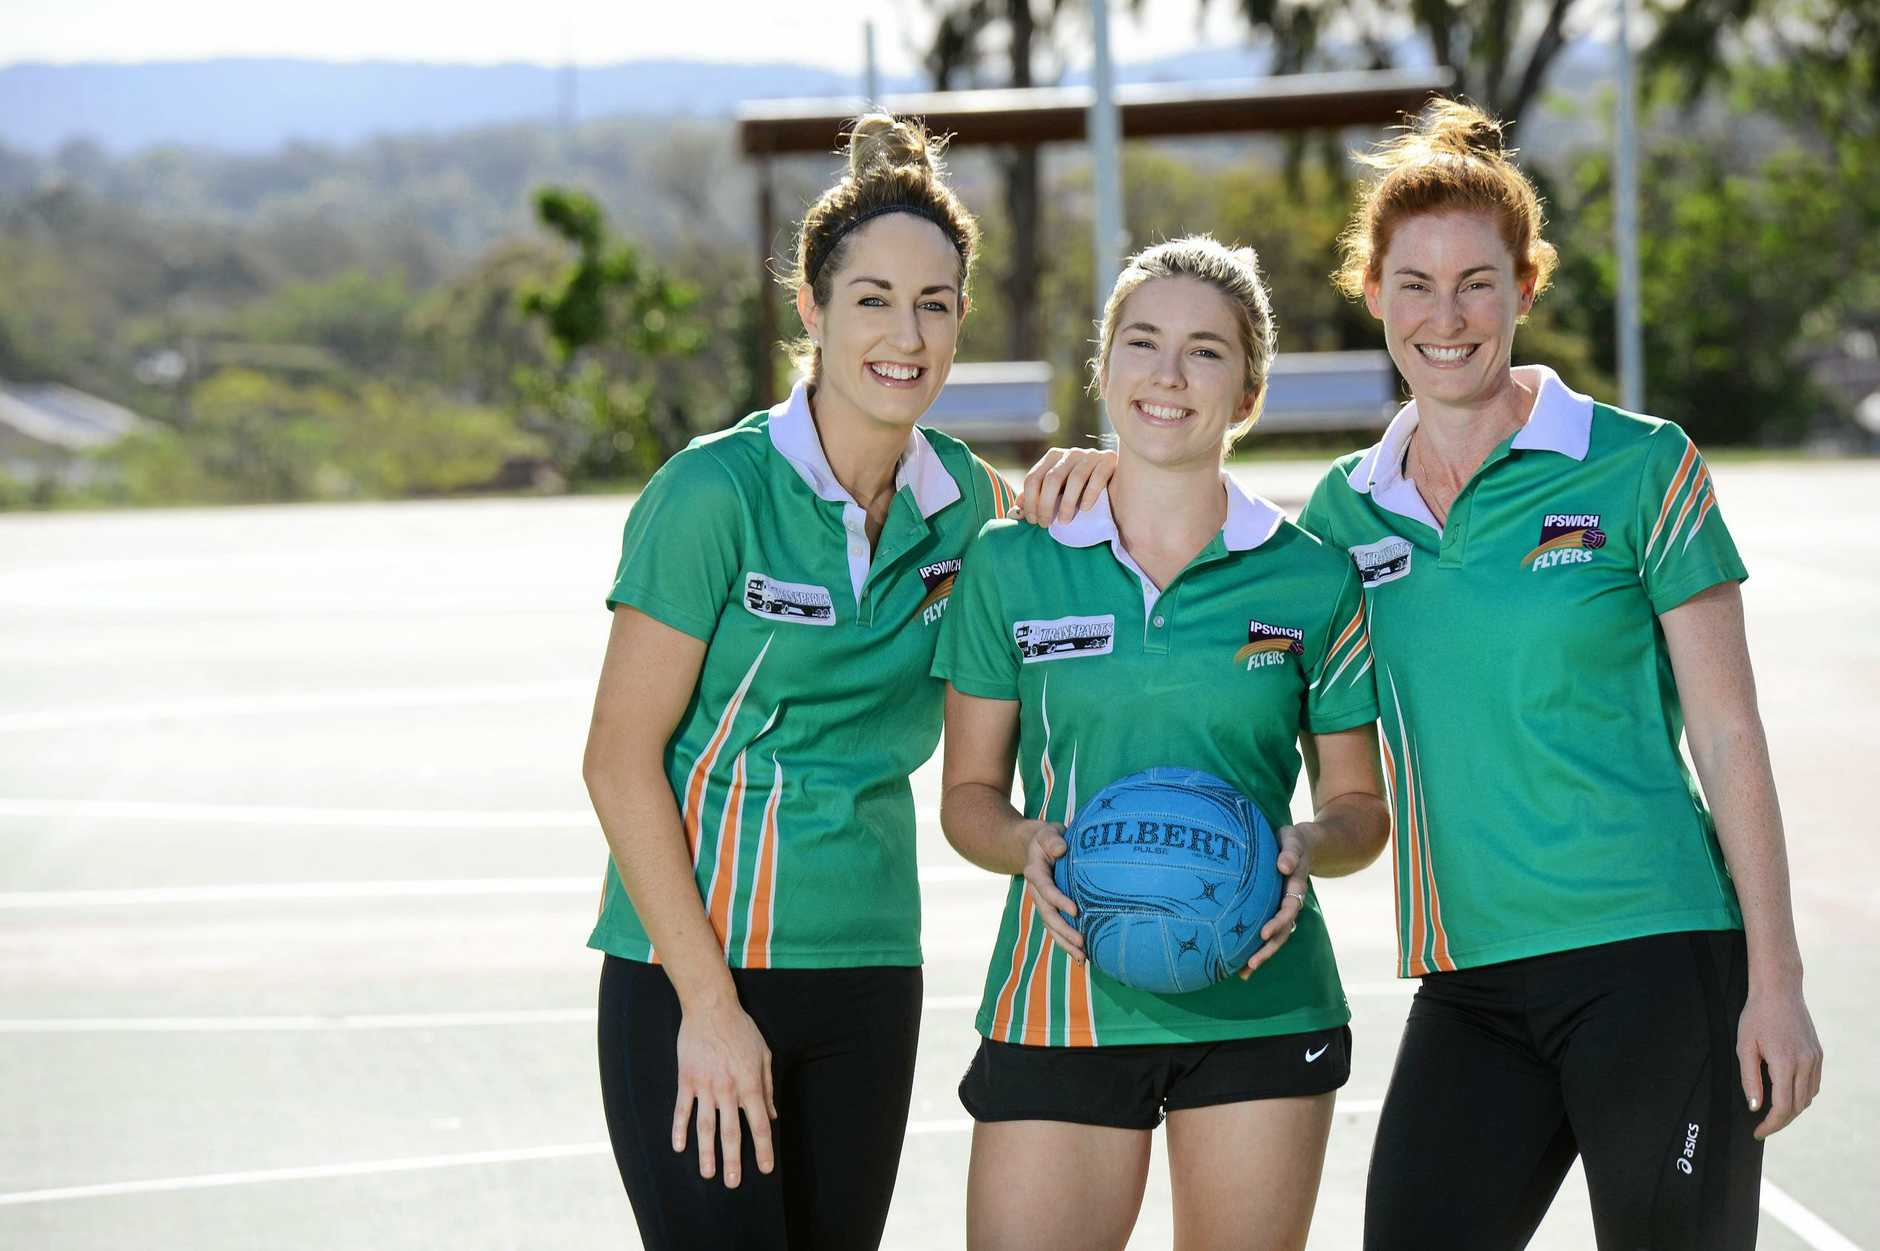 Ipswich Flyers netball players Nicole Grant, Bridget Cumming and Liz Hales prepare for the SEQ Challenge Grand Final match.